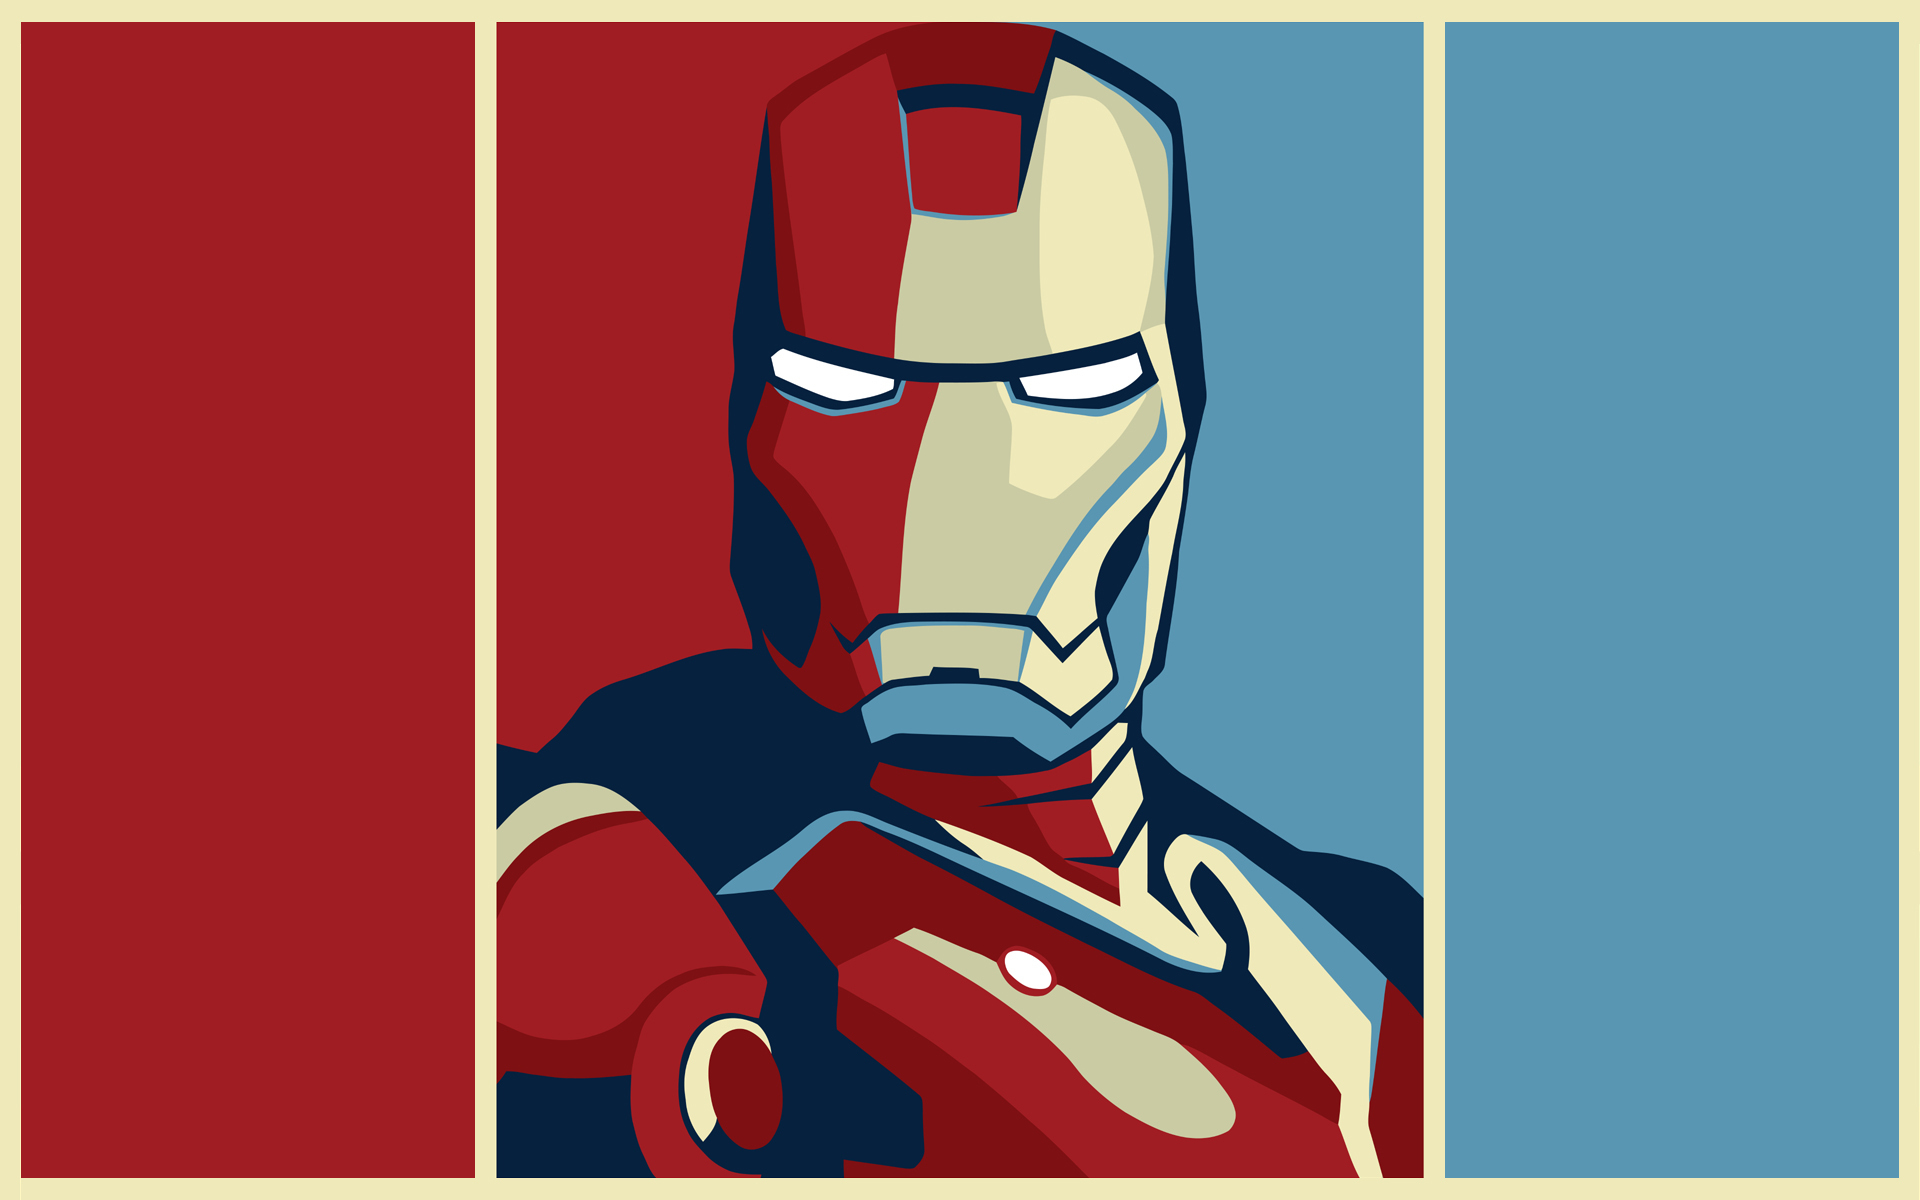 50 hd wallpapers of comic heroes and villains - Iron man wallpaper cartoon ...